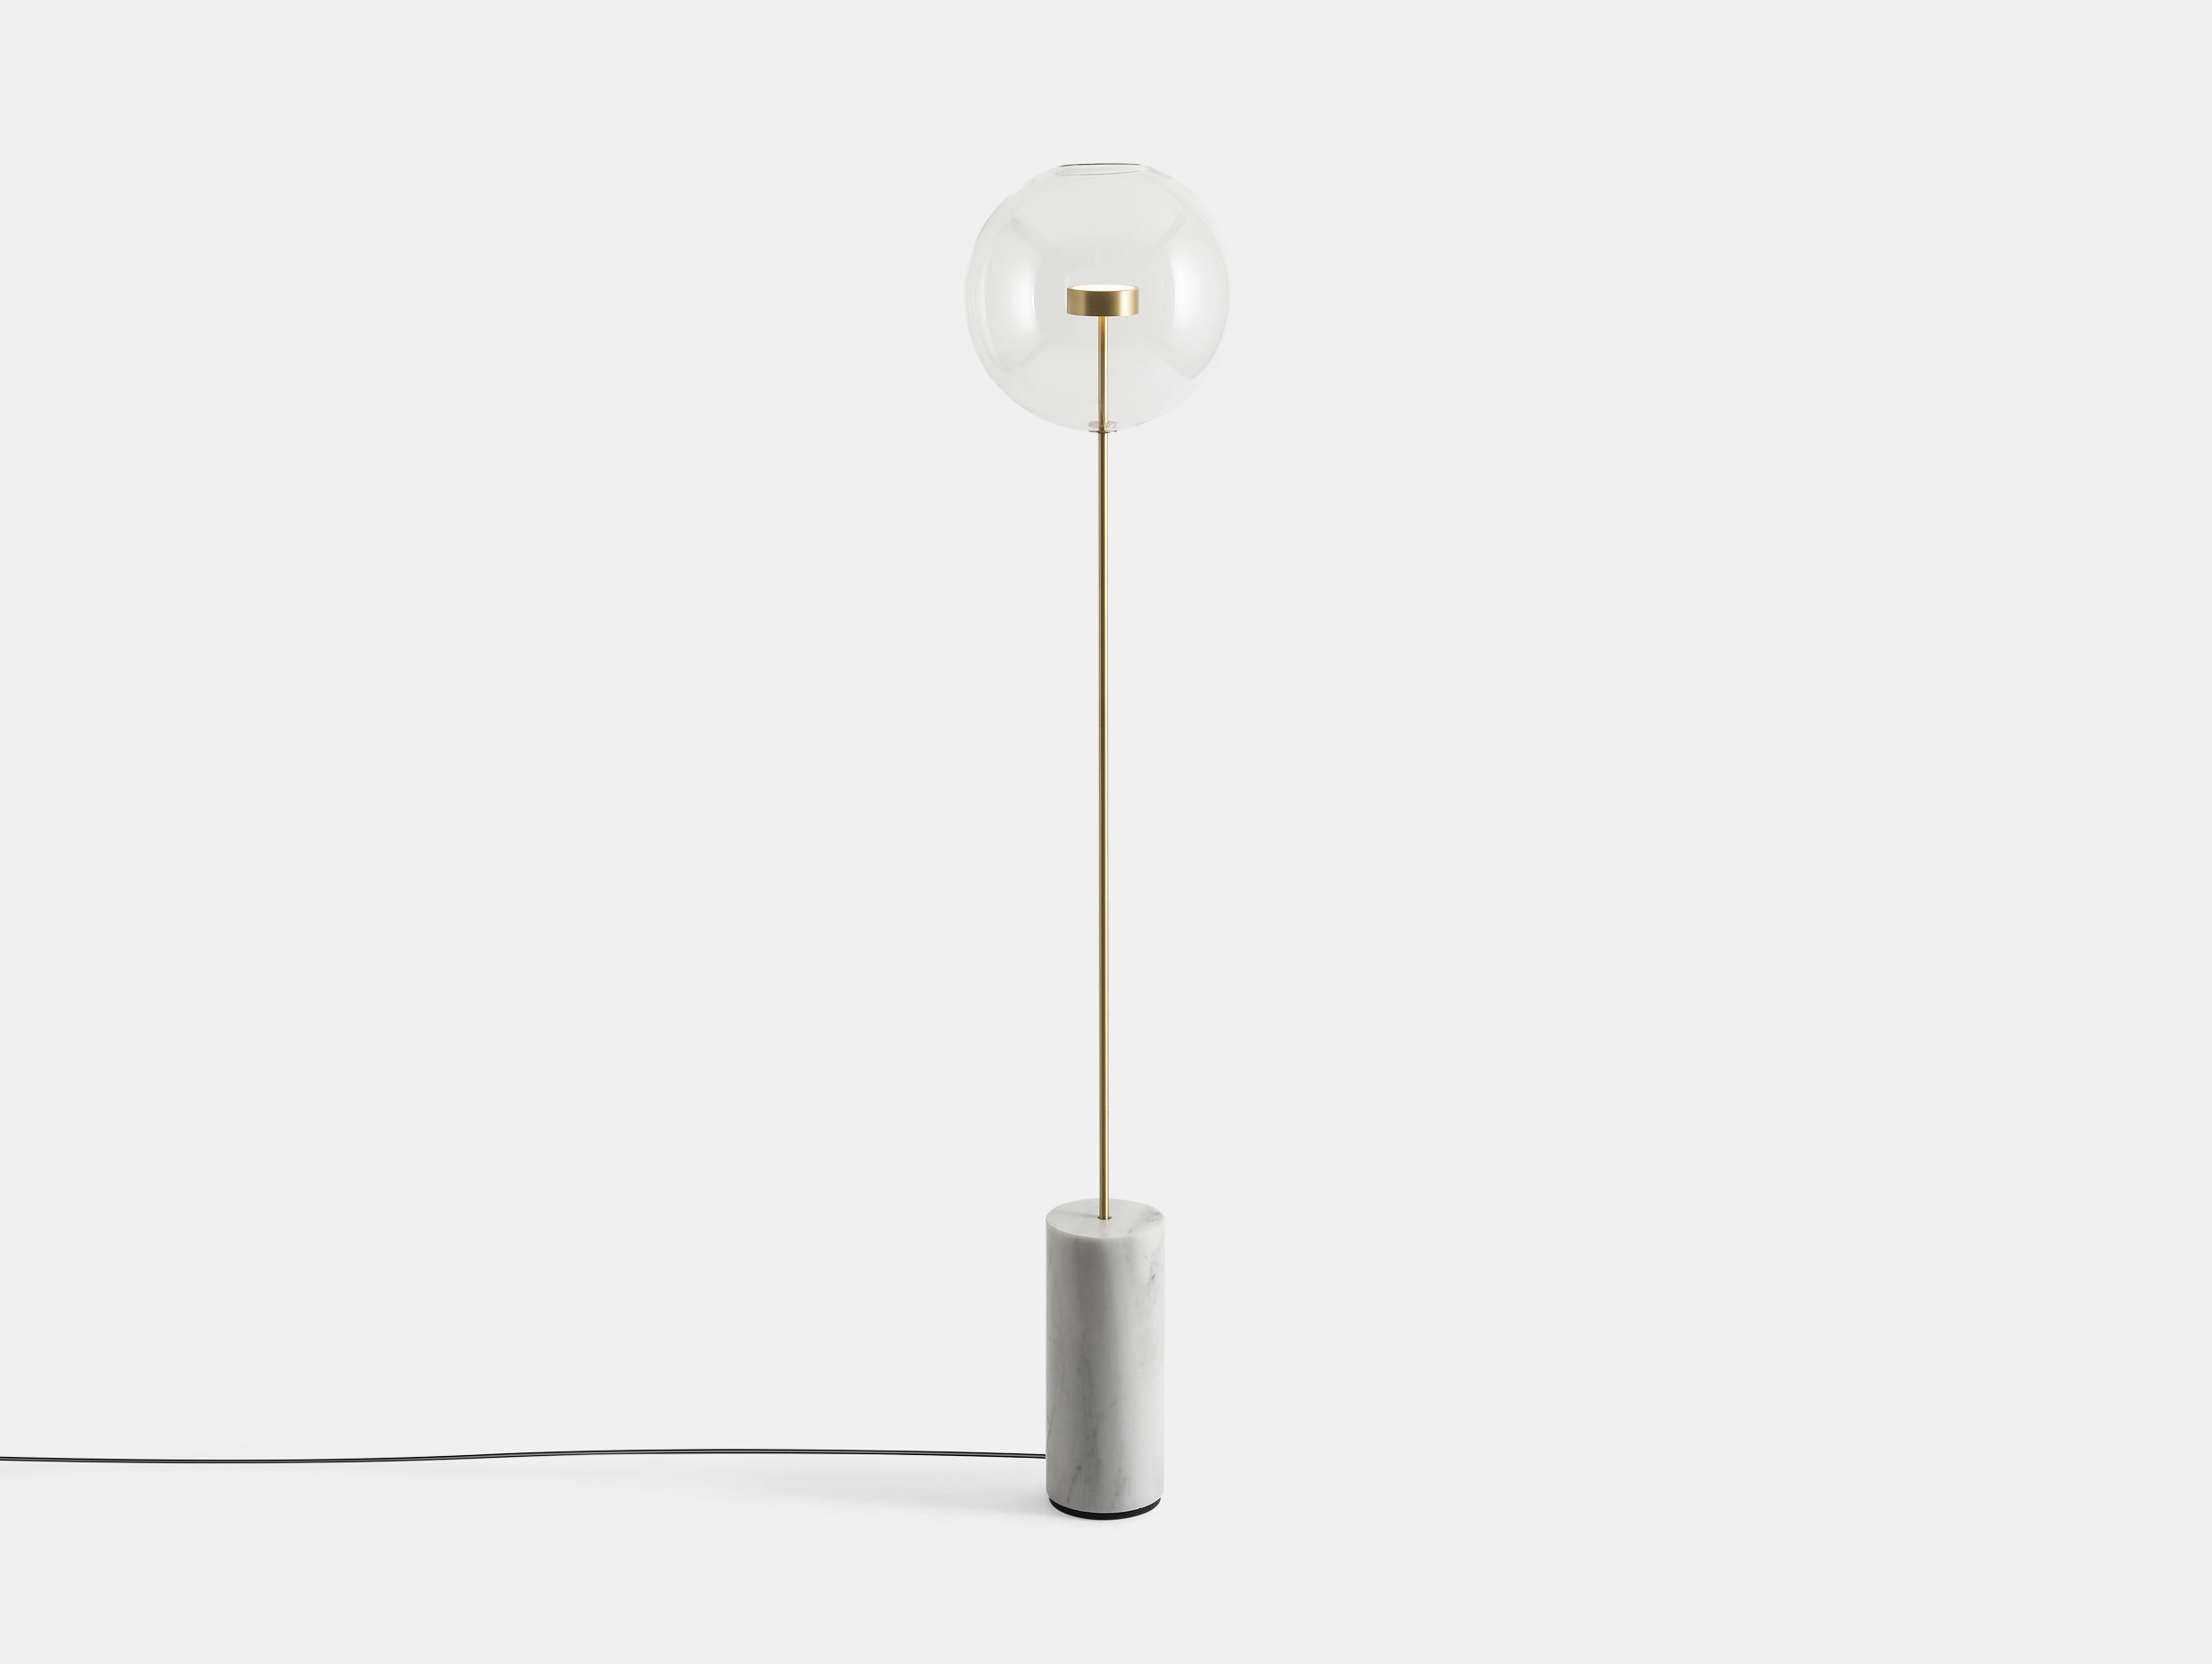 Bolle Soffio Floor Light image 1